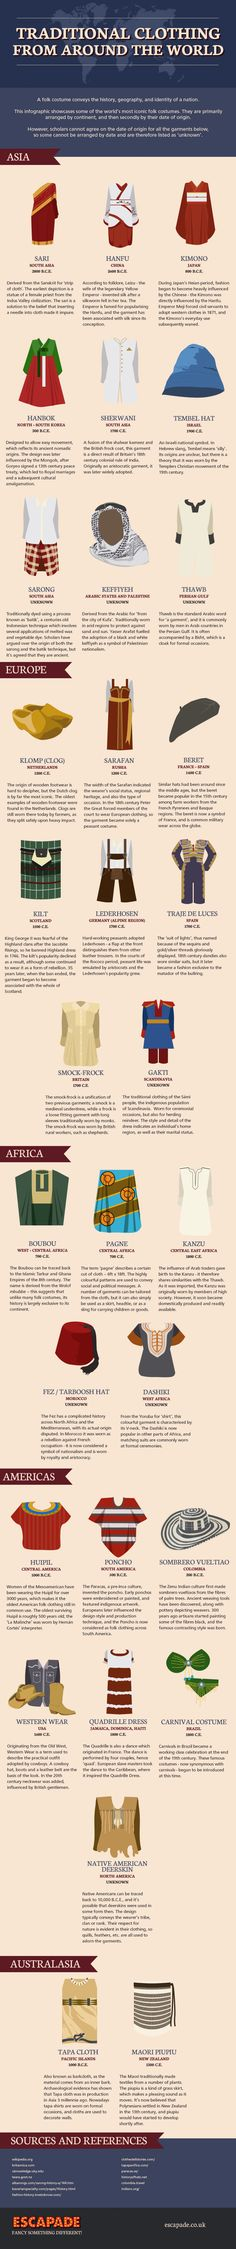 A look at the different types of traditional clothing from around the world. The fashion industry is always borrowing ideas from other cultures and eras so it's important to know where the inspiration for each new collection comes from and for Spring Summer 2015, it's all about Japanese kimonos.